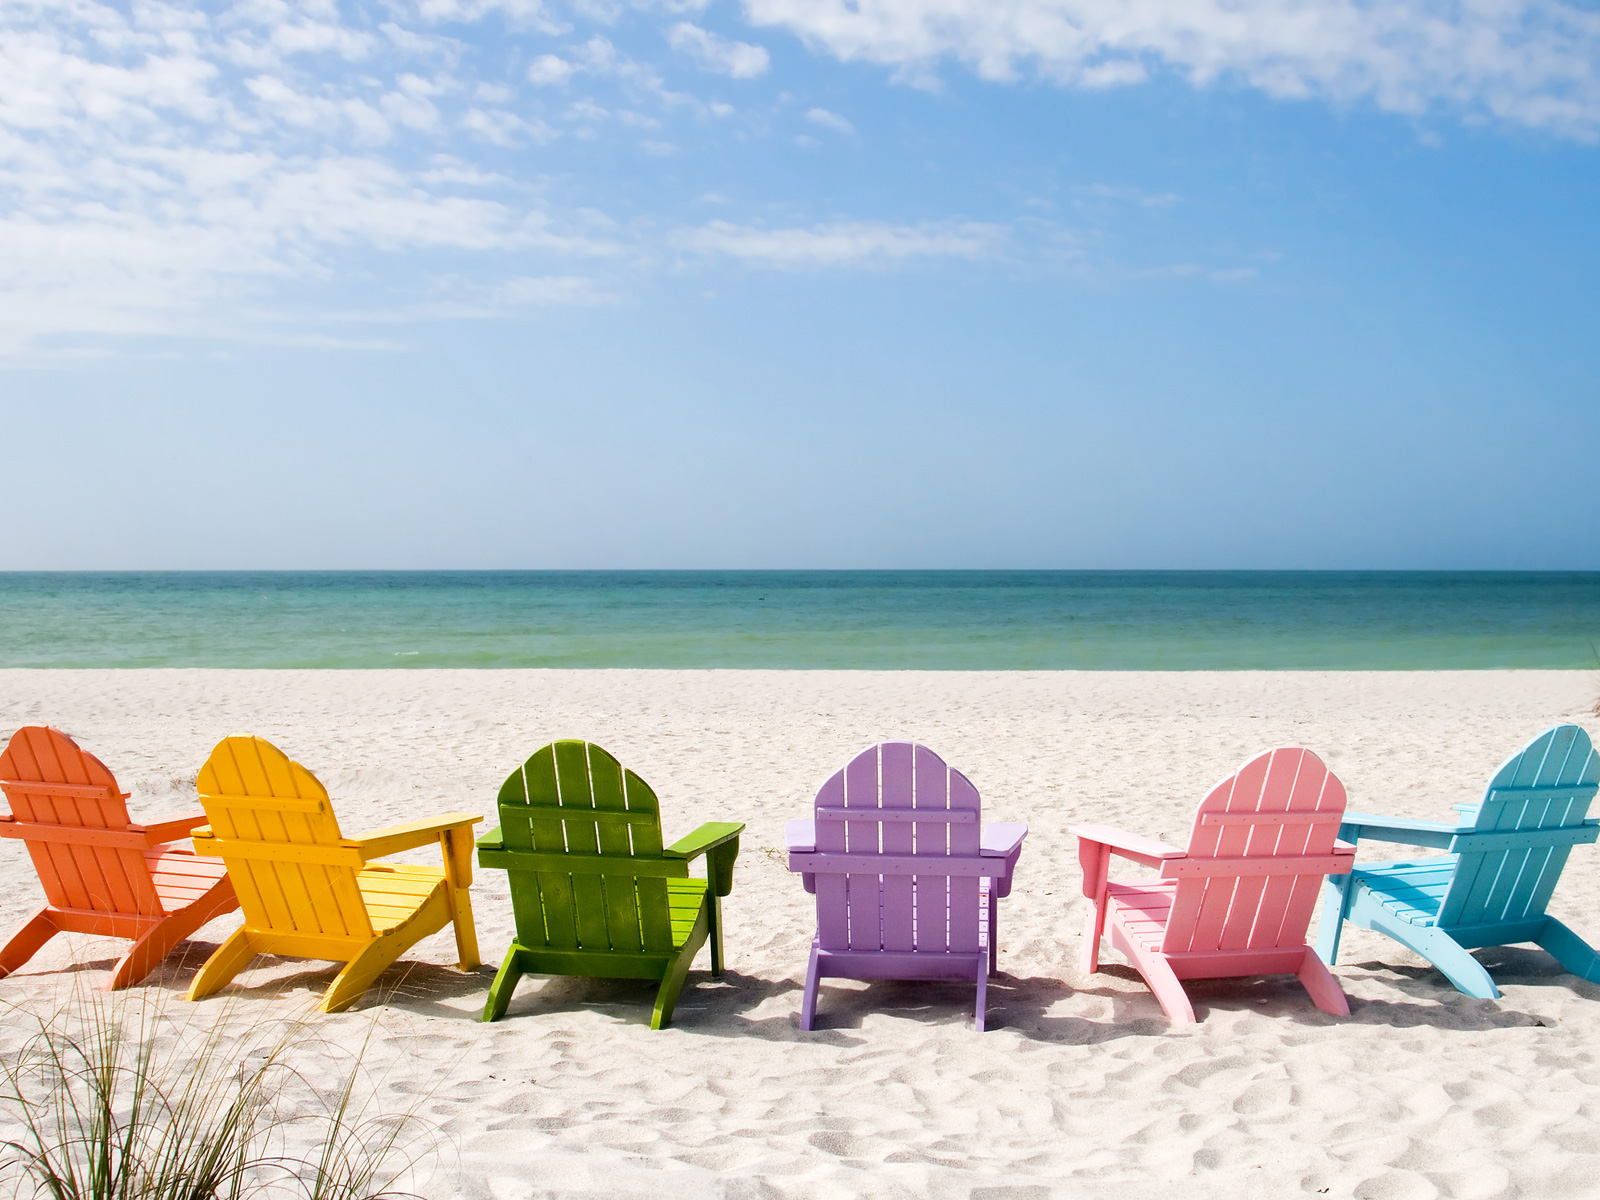 The Best Oversized Beach Chairs For Heavy People